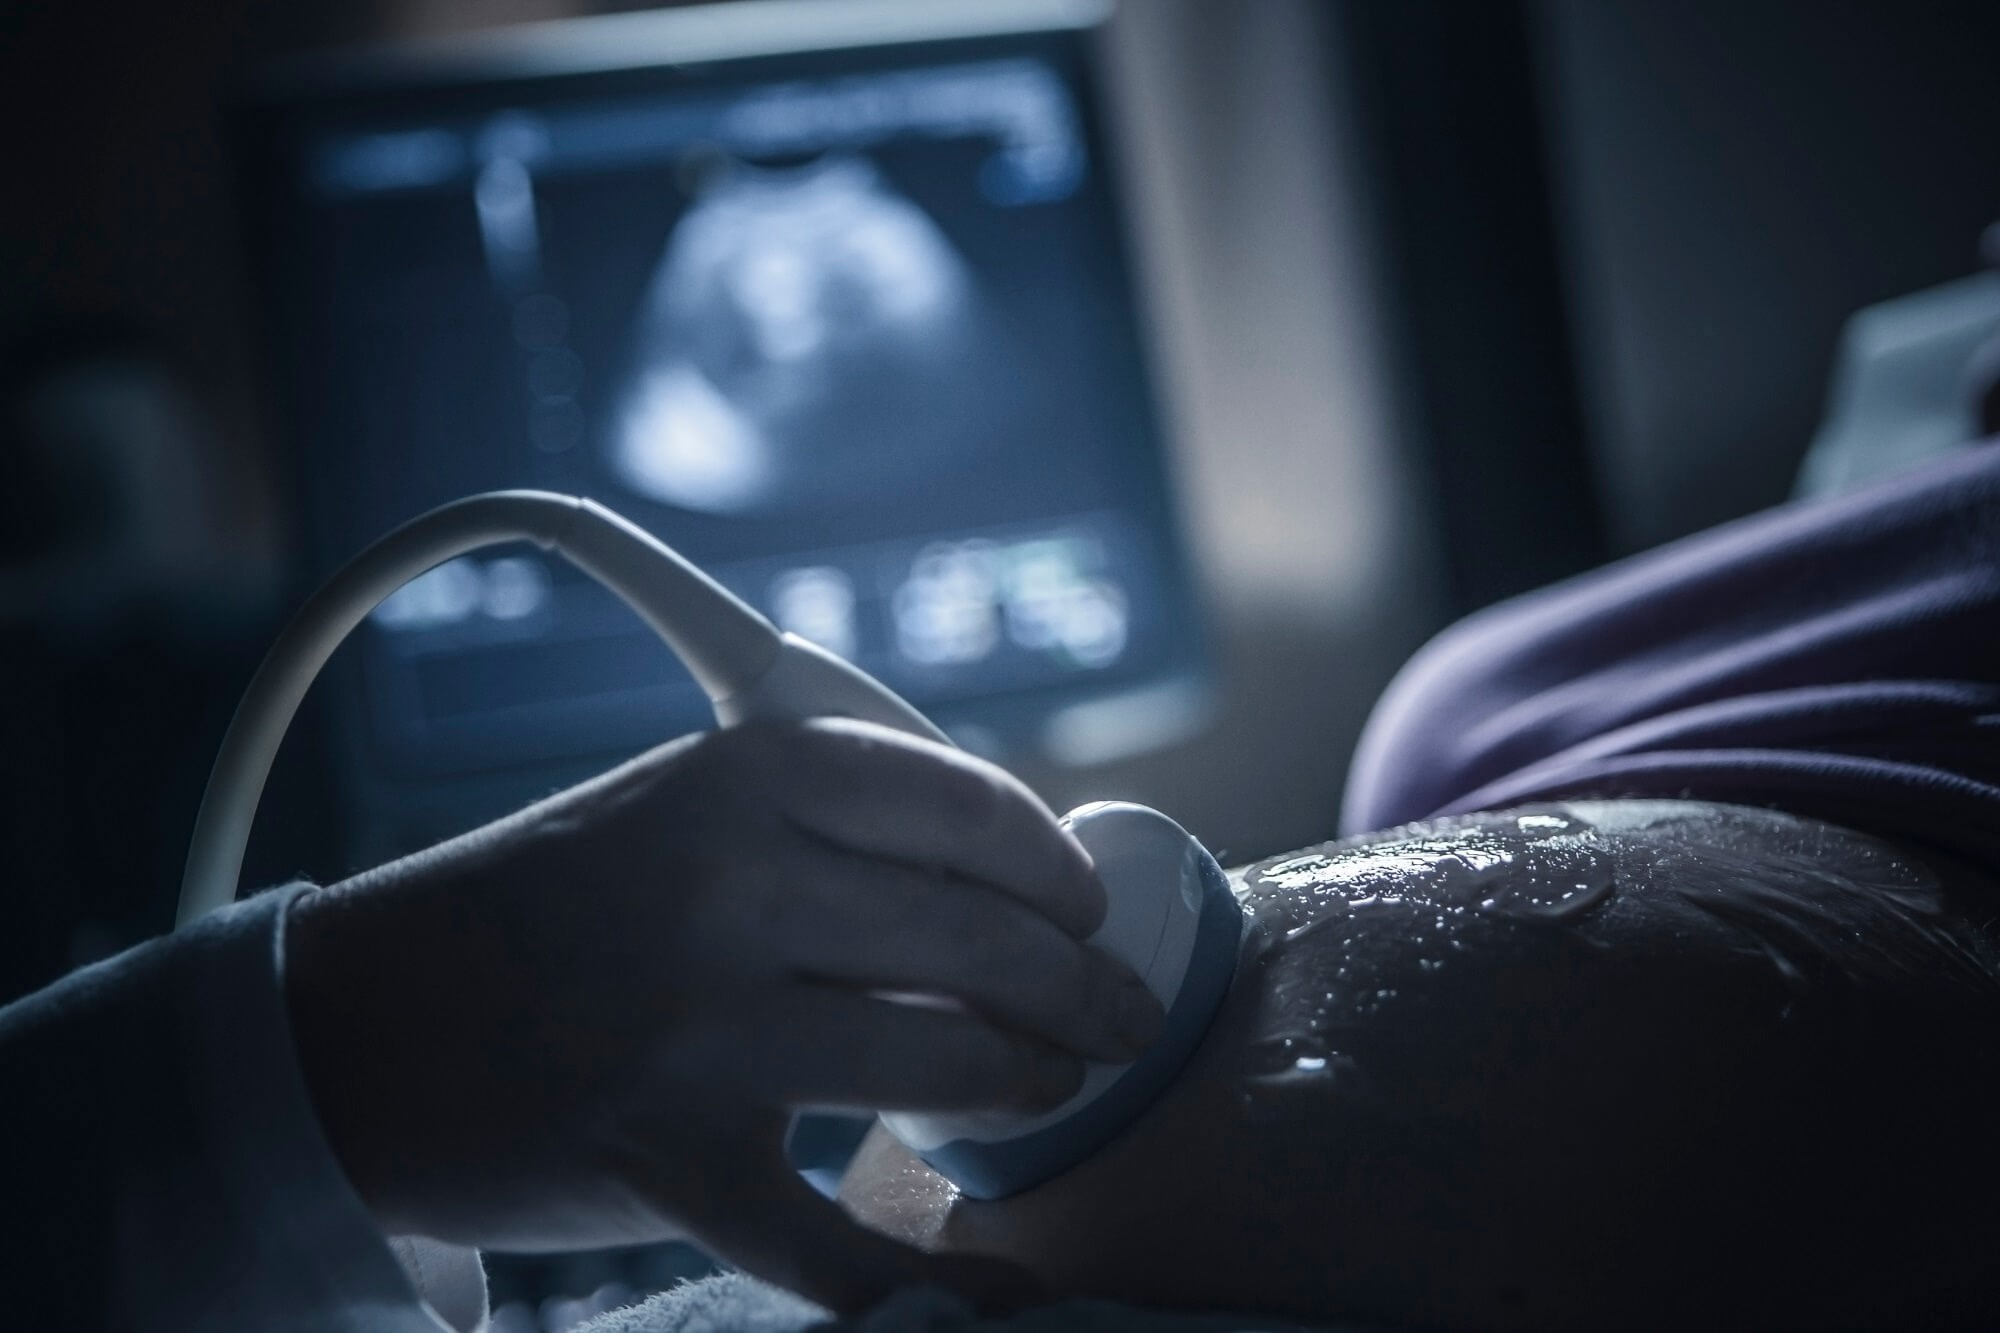 Pregnancy Loss Associated With Increased CHD and Heart Failure Risk